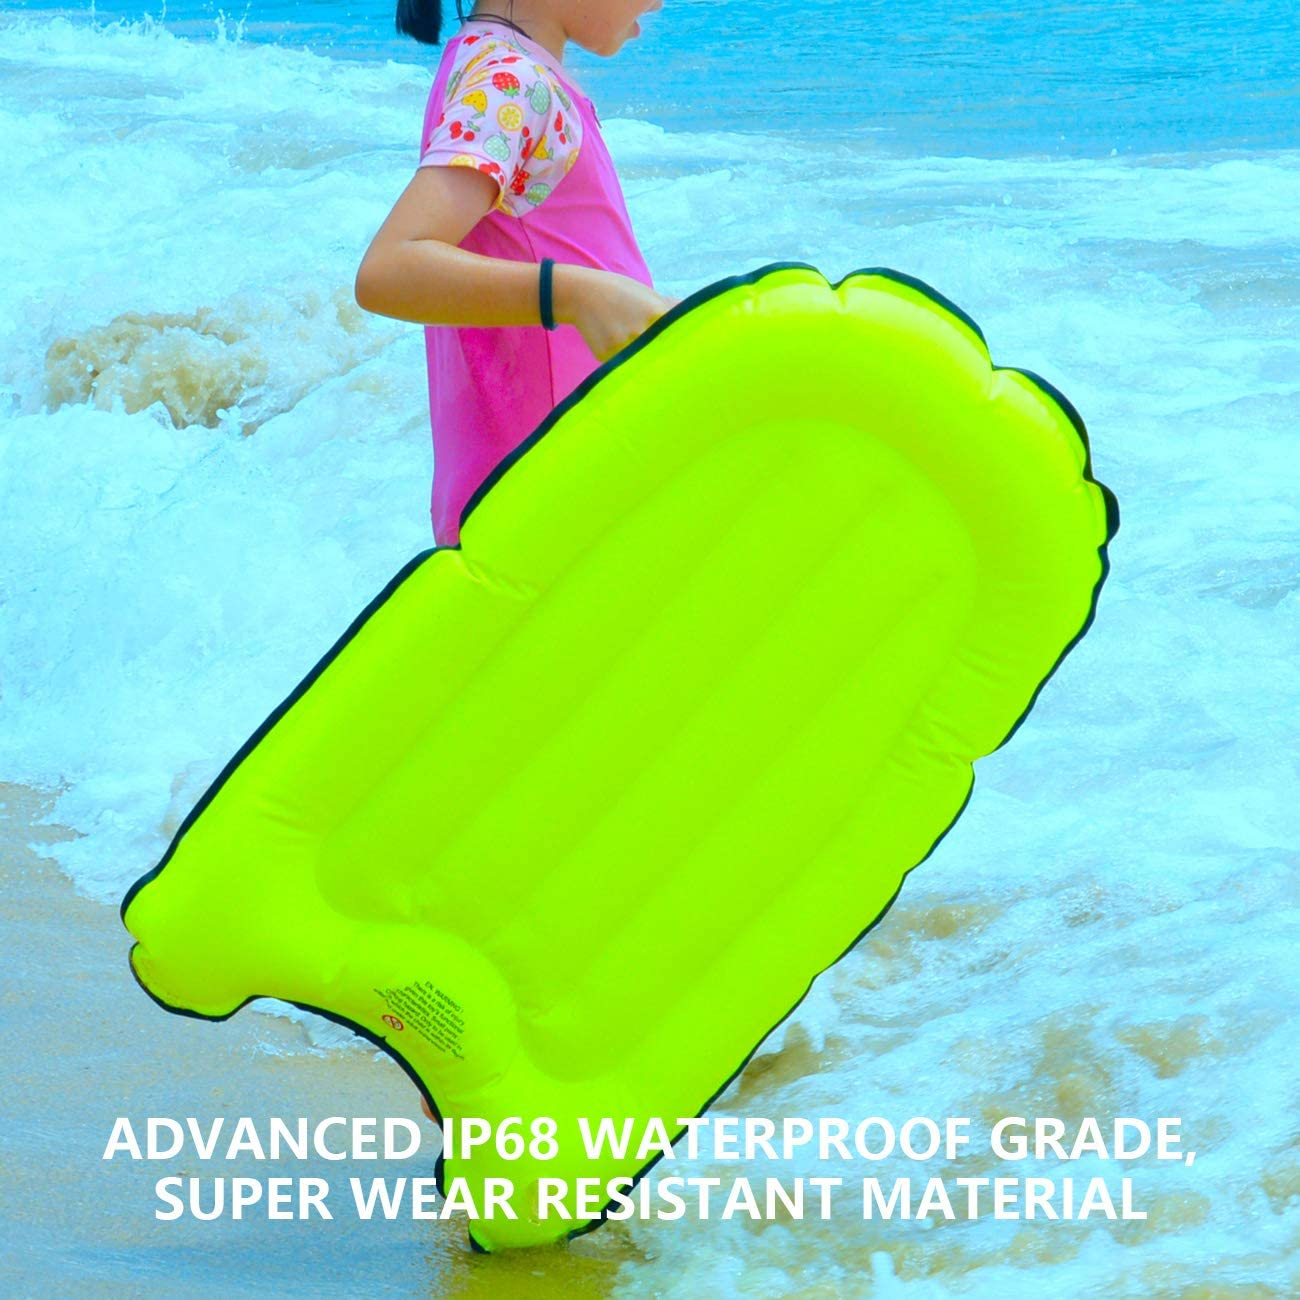 OMOUBOI Outdoor Portable Inflatable Surfboard,Pool Float Mat with Handles Foldable Waterproof Surfing Air Cushion Swimming Wading Buoyancy Bed for Beginners Swimming